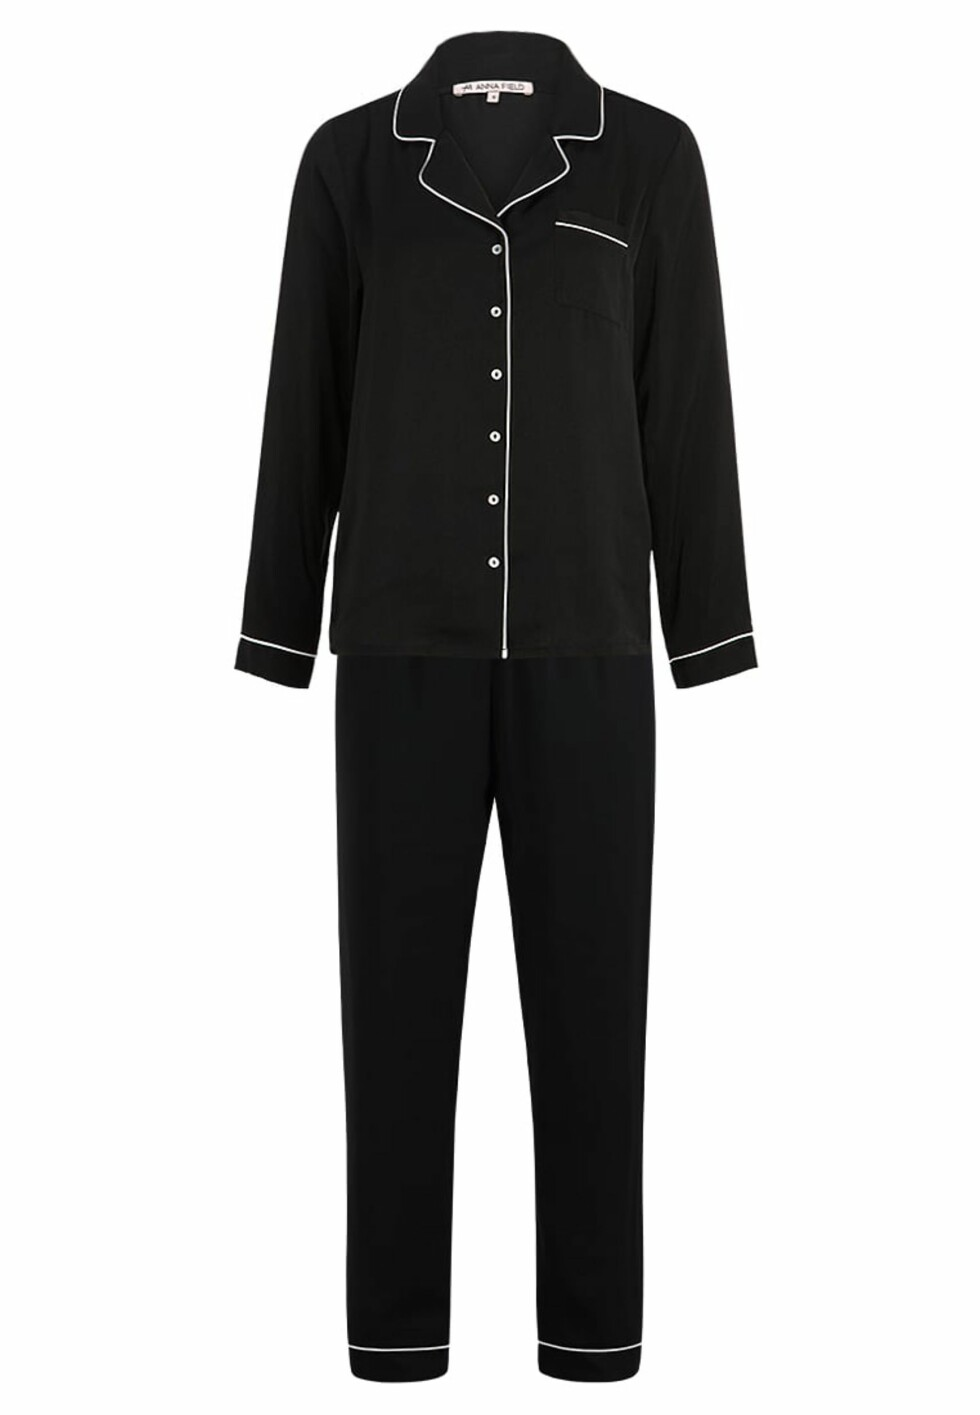 Psyj fra Anna Field |349,-| https://www.zalando.no/anna-field-set-pyjamas-an681p008-q11.html